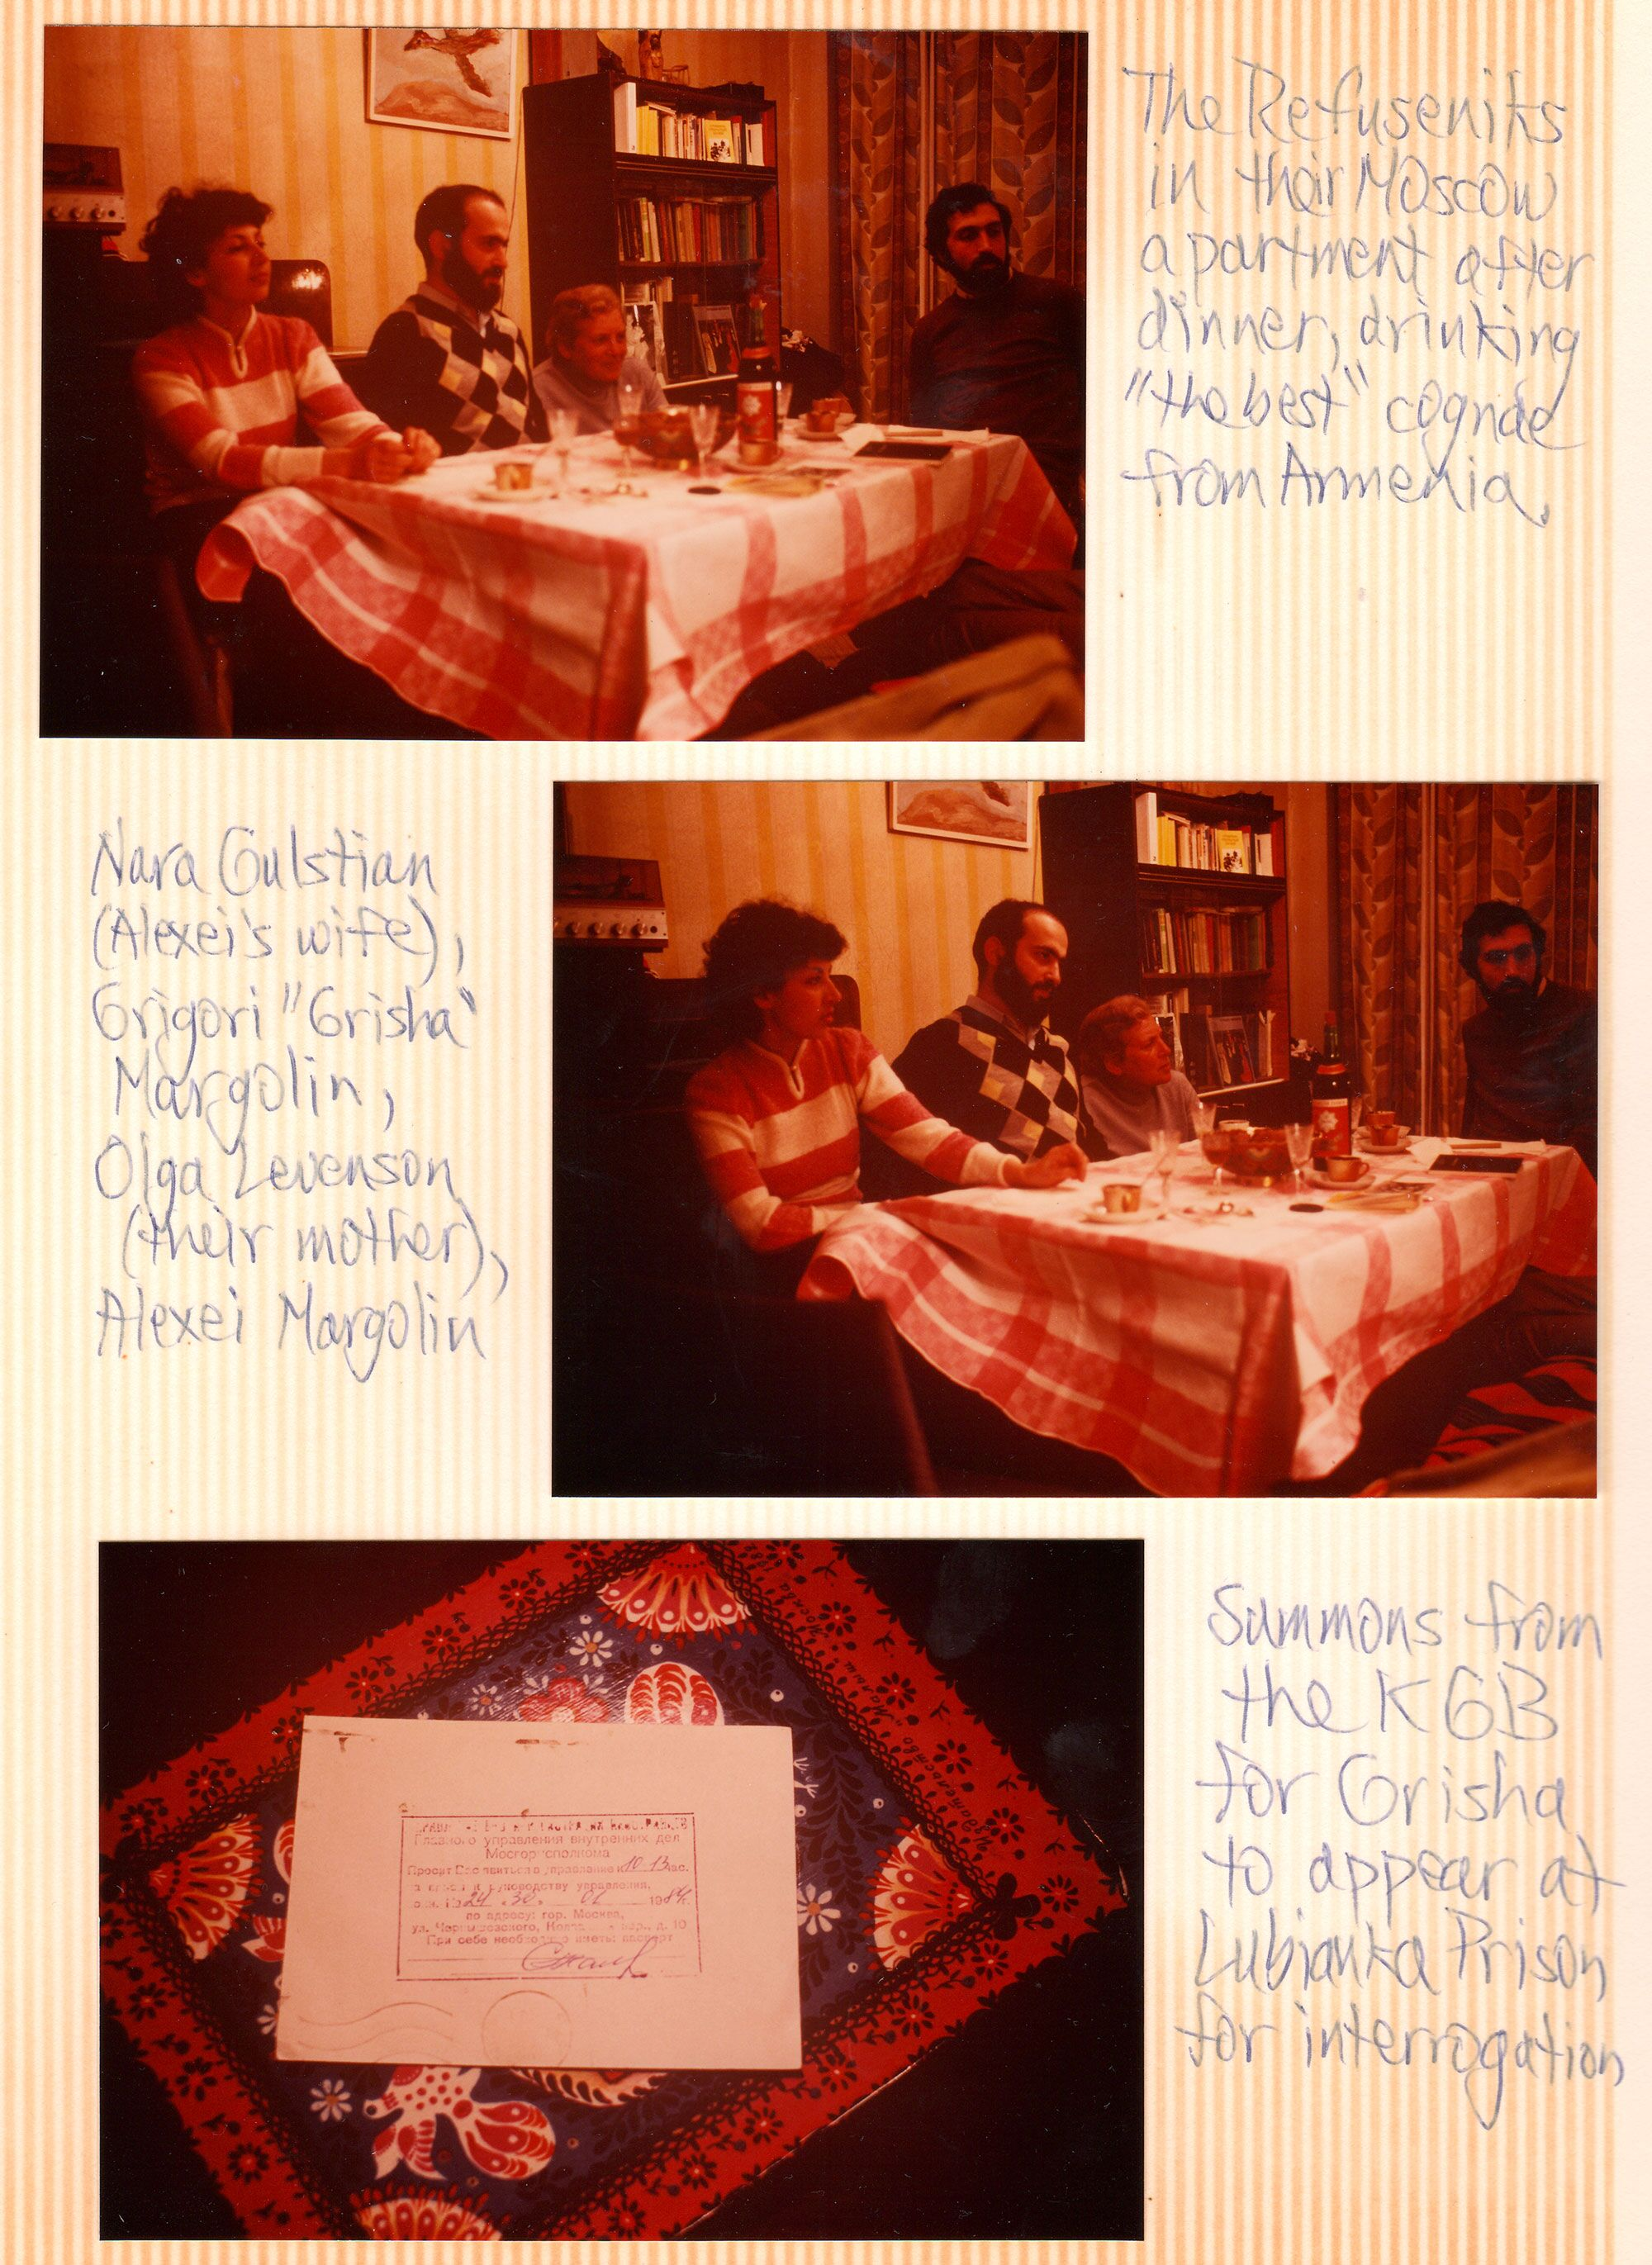 Scan from Hamer's scrapbook, showing the dinner with the Margolin family.